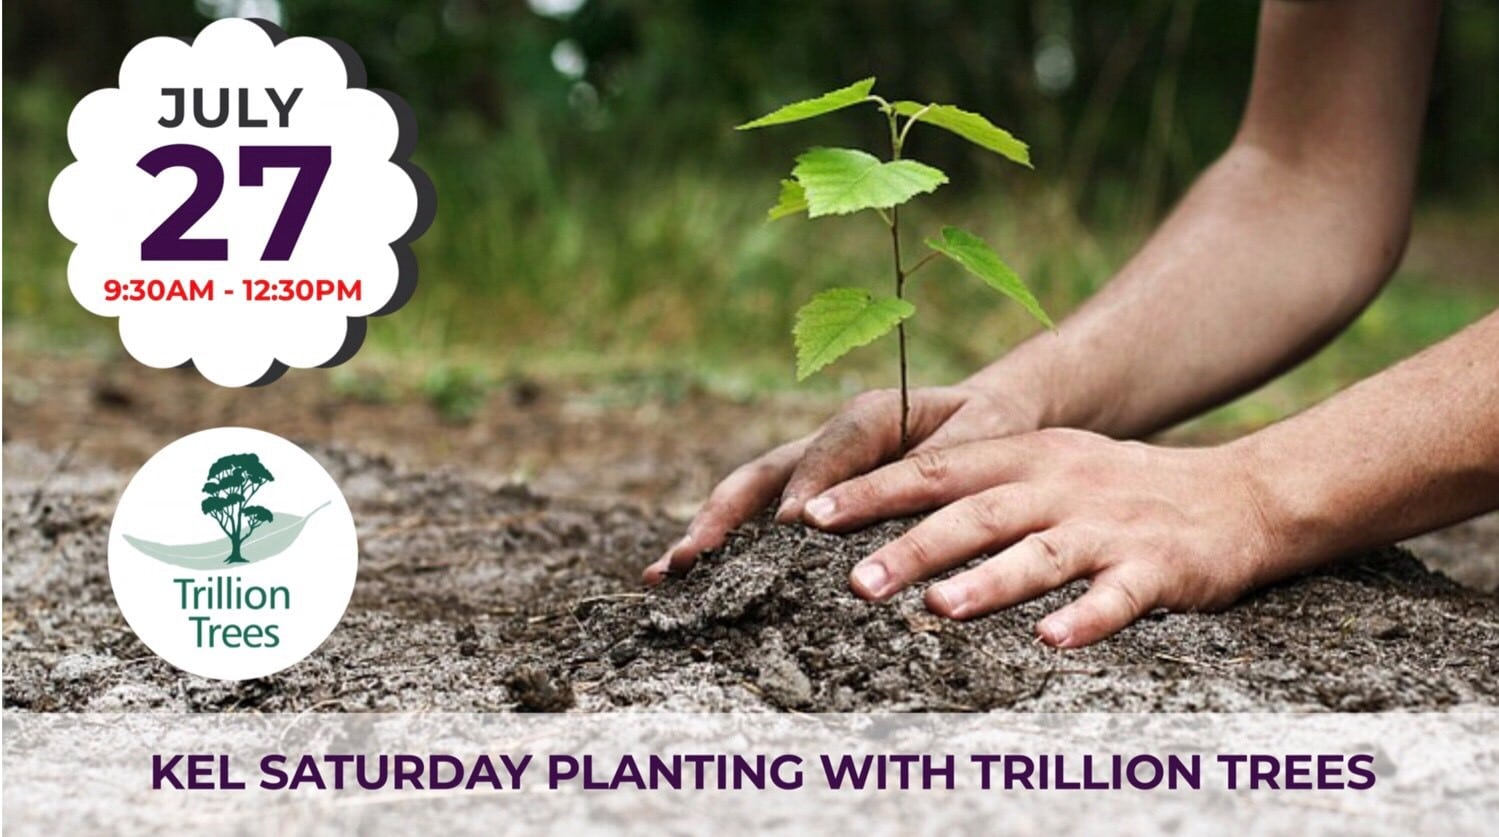 Kel Saturday Planting with TT 27Jul19